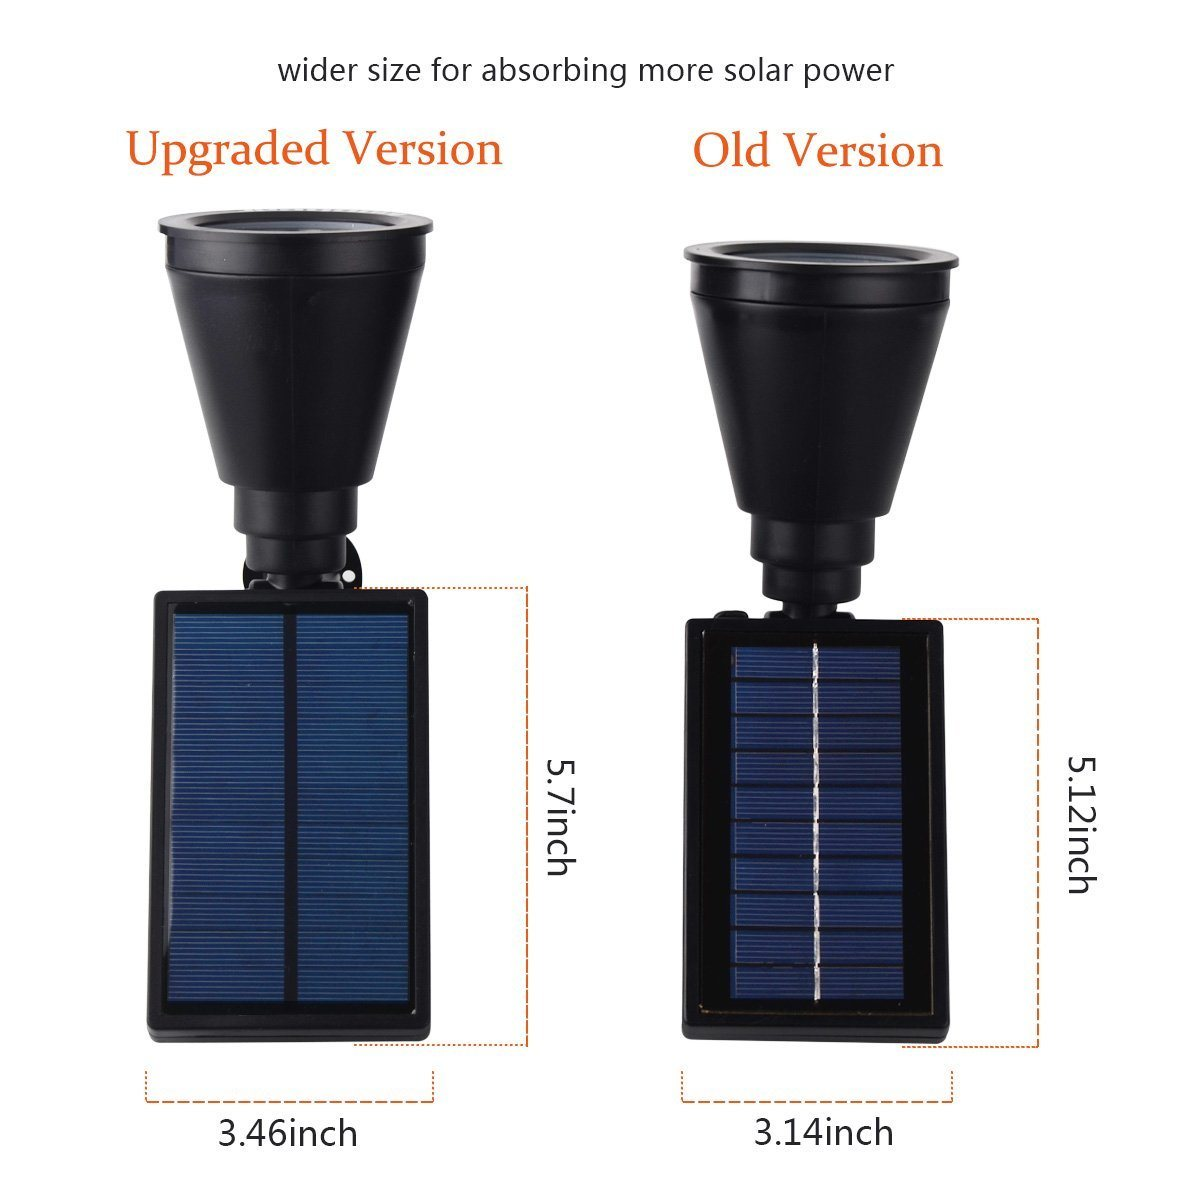 2-in-1 Solar Light Spotlight Outdoor LED Landscape Lighting Waterproof Wall Light Security Night Lights for Tree Flag Driveway Yard Garden